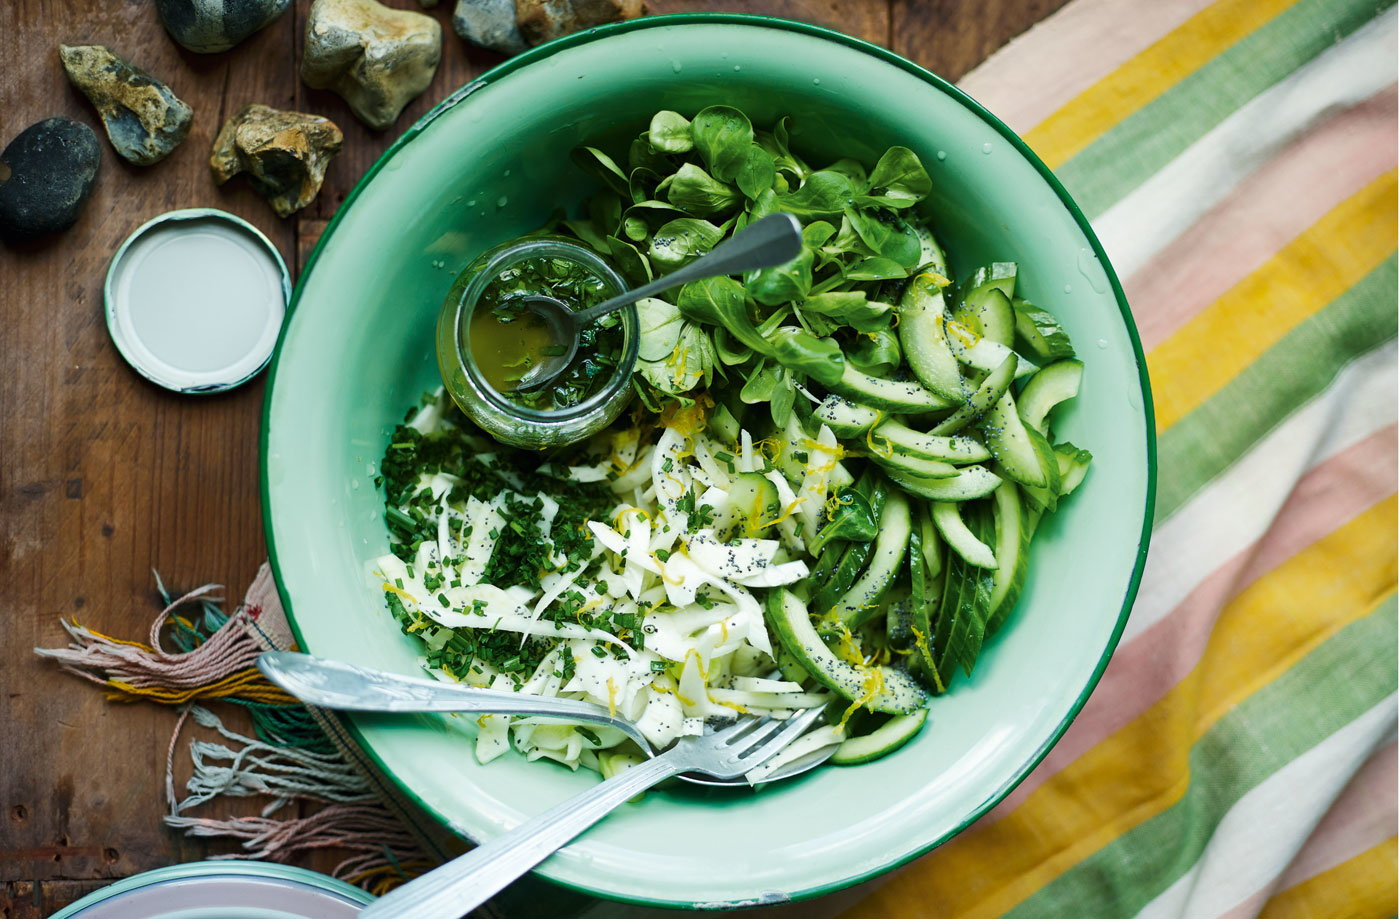 Cucumber, fennel and parsley salad recipe